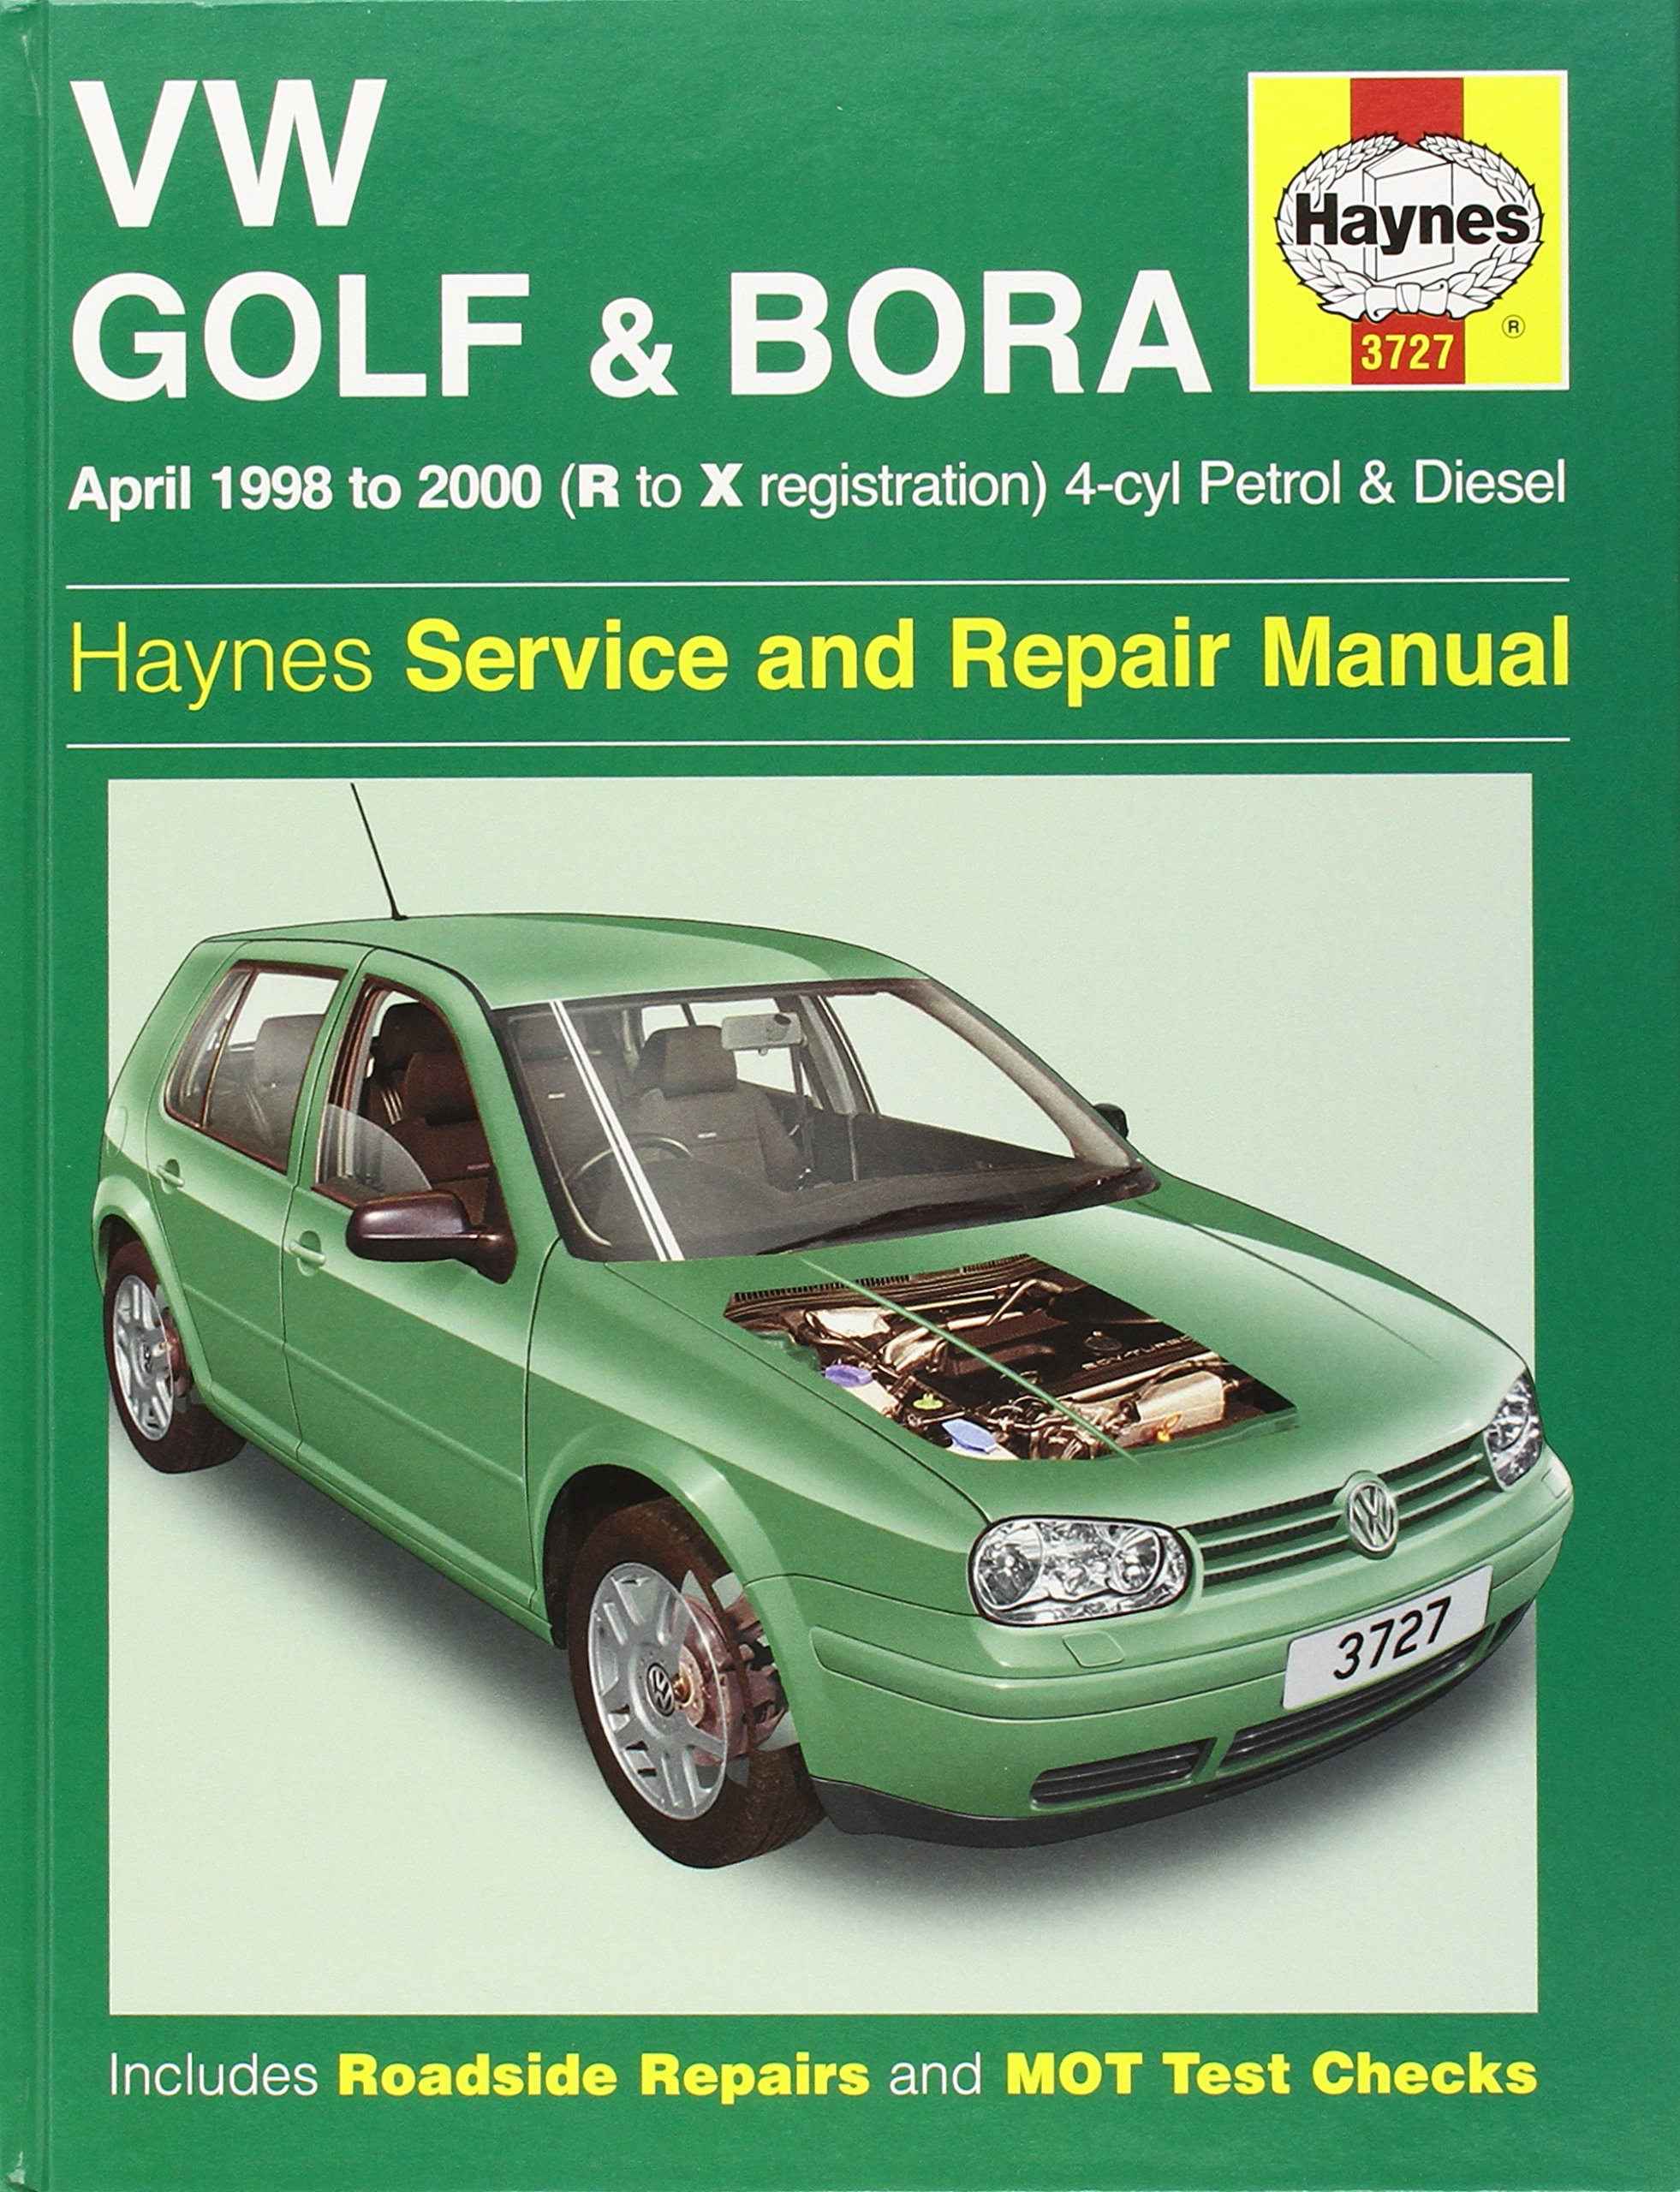 volkswagen golf and bora petrol and diesel 1998 2000 service and rh amazon  co uk Instruction Manual owner's manual golf 4